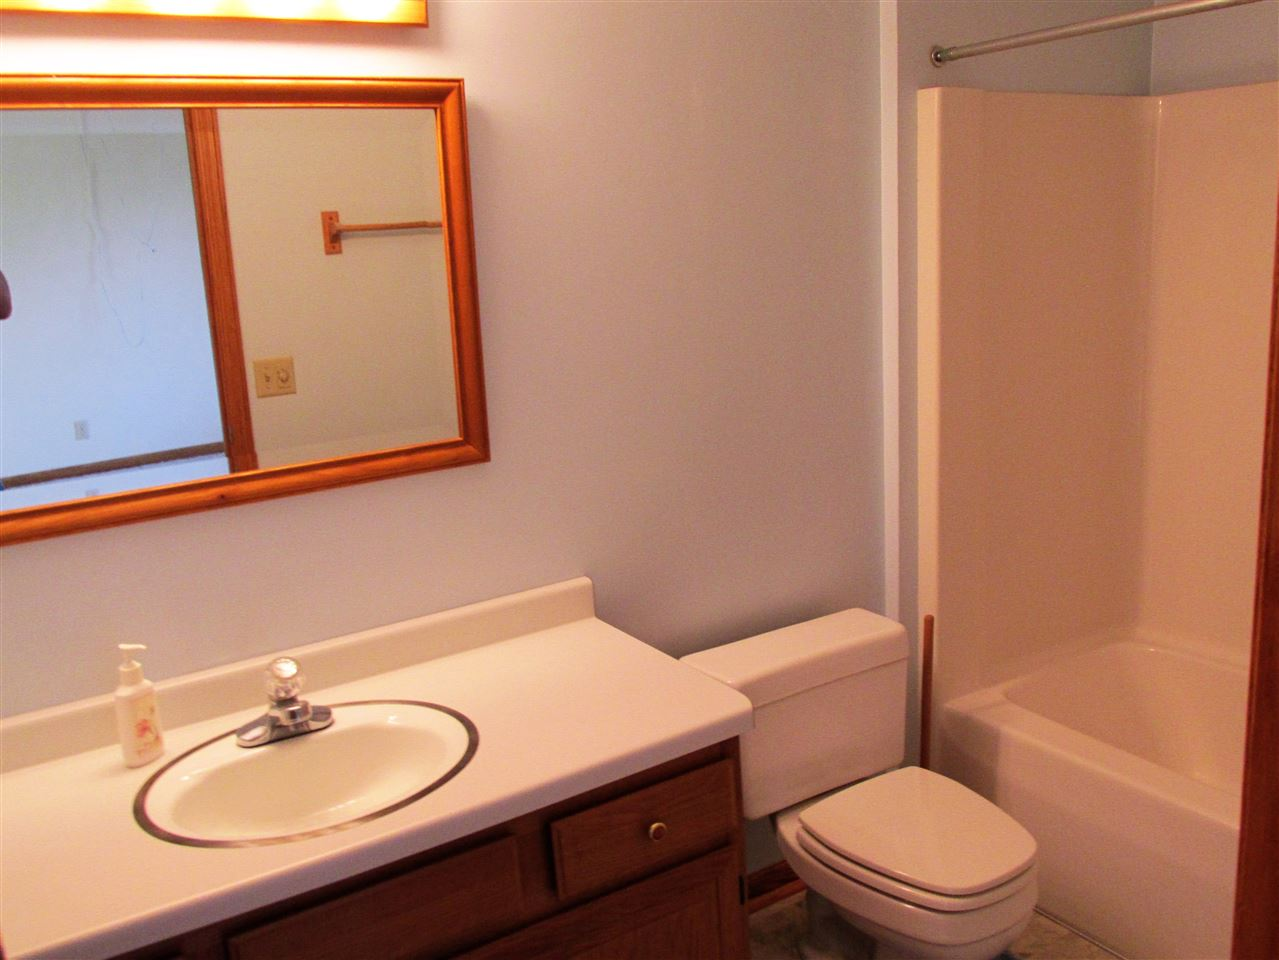 Bathroom Fixtures Janesville Wi 5417 n river rd, janesville, wi 53546 mls# 1790083 - movoto